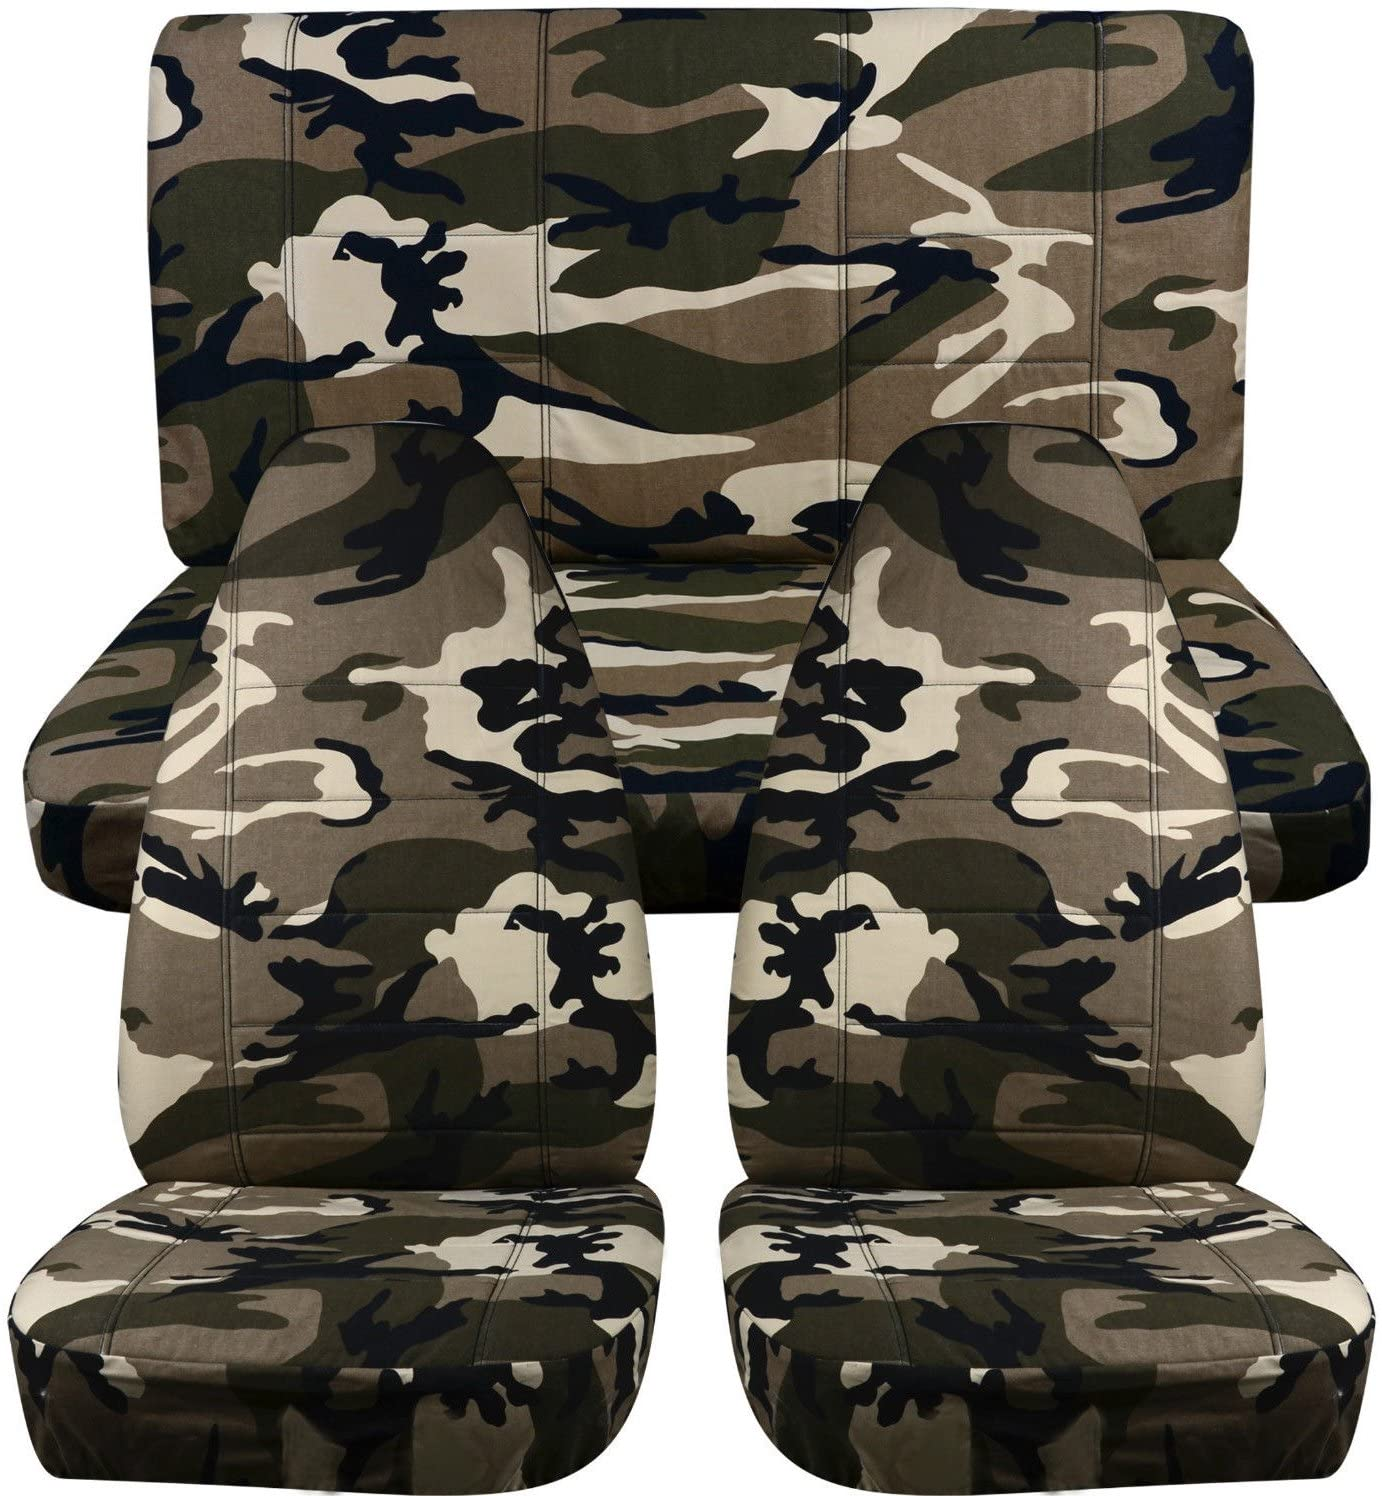 Totally Covers Compatible with 1997-2006 Jeep Wrangler TJ Camo Seat Covers: Tan & Beige Camouflage - Full Set: Front & Rear (19 Prints) 2-Door Complete Back Bench